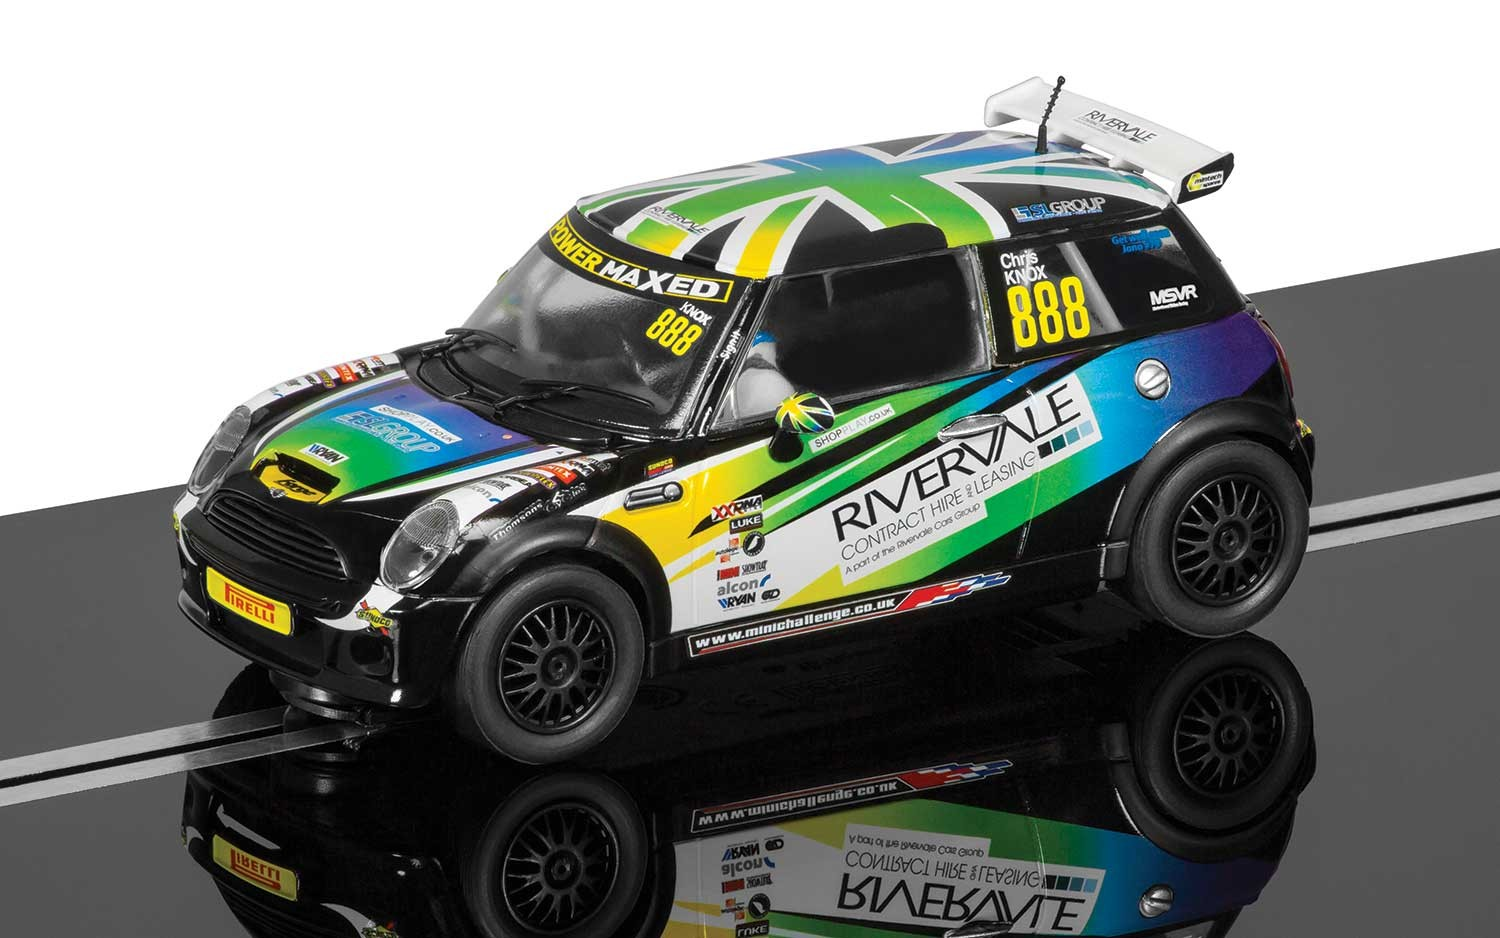 BMW MINI Cooper S - Chris Knox